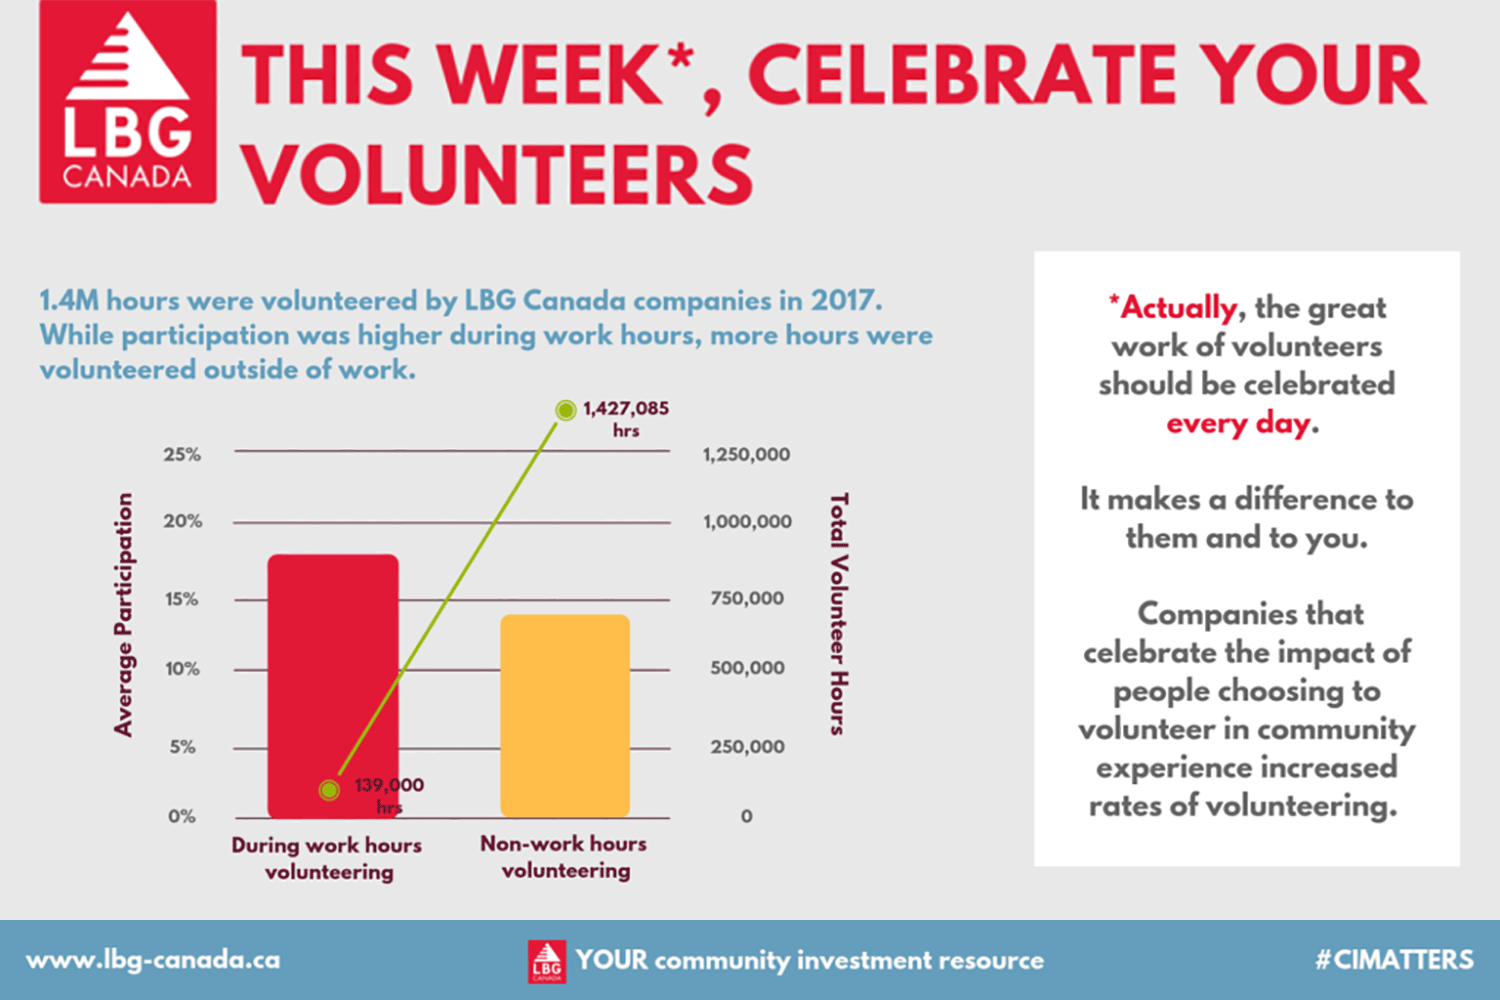 This Week*, Celebrate Your Volunteers